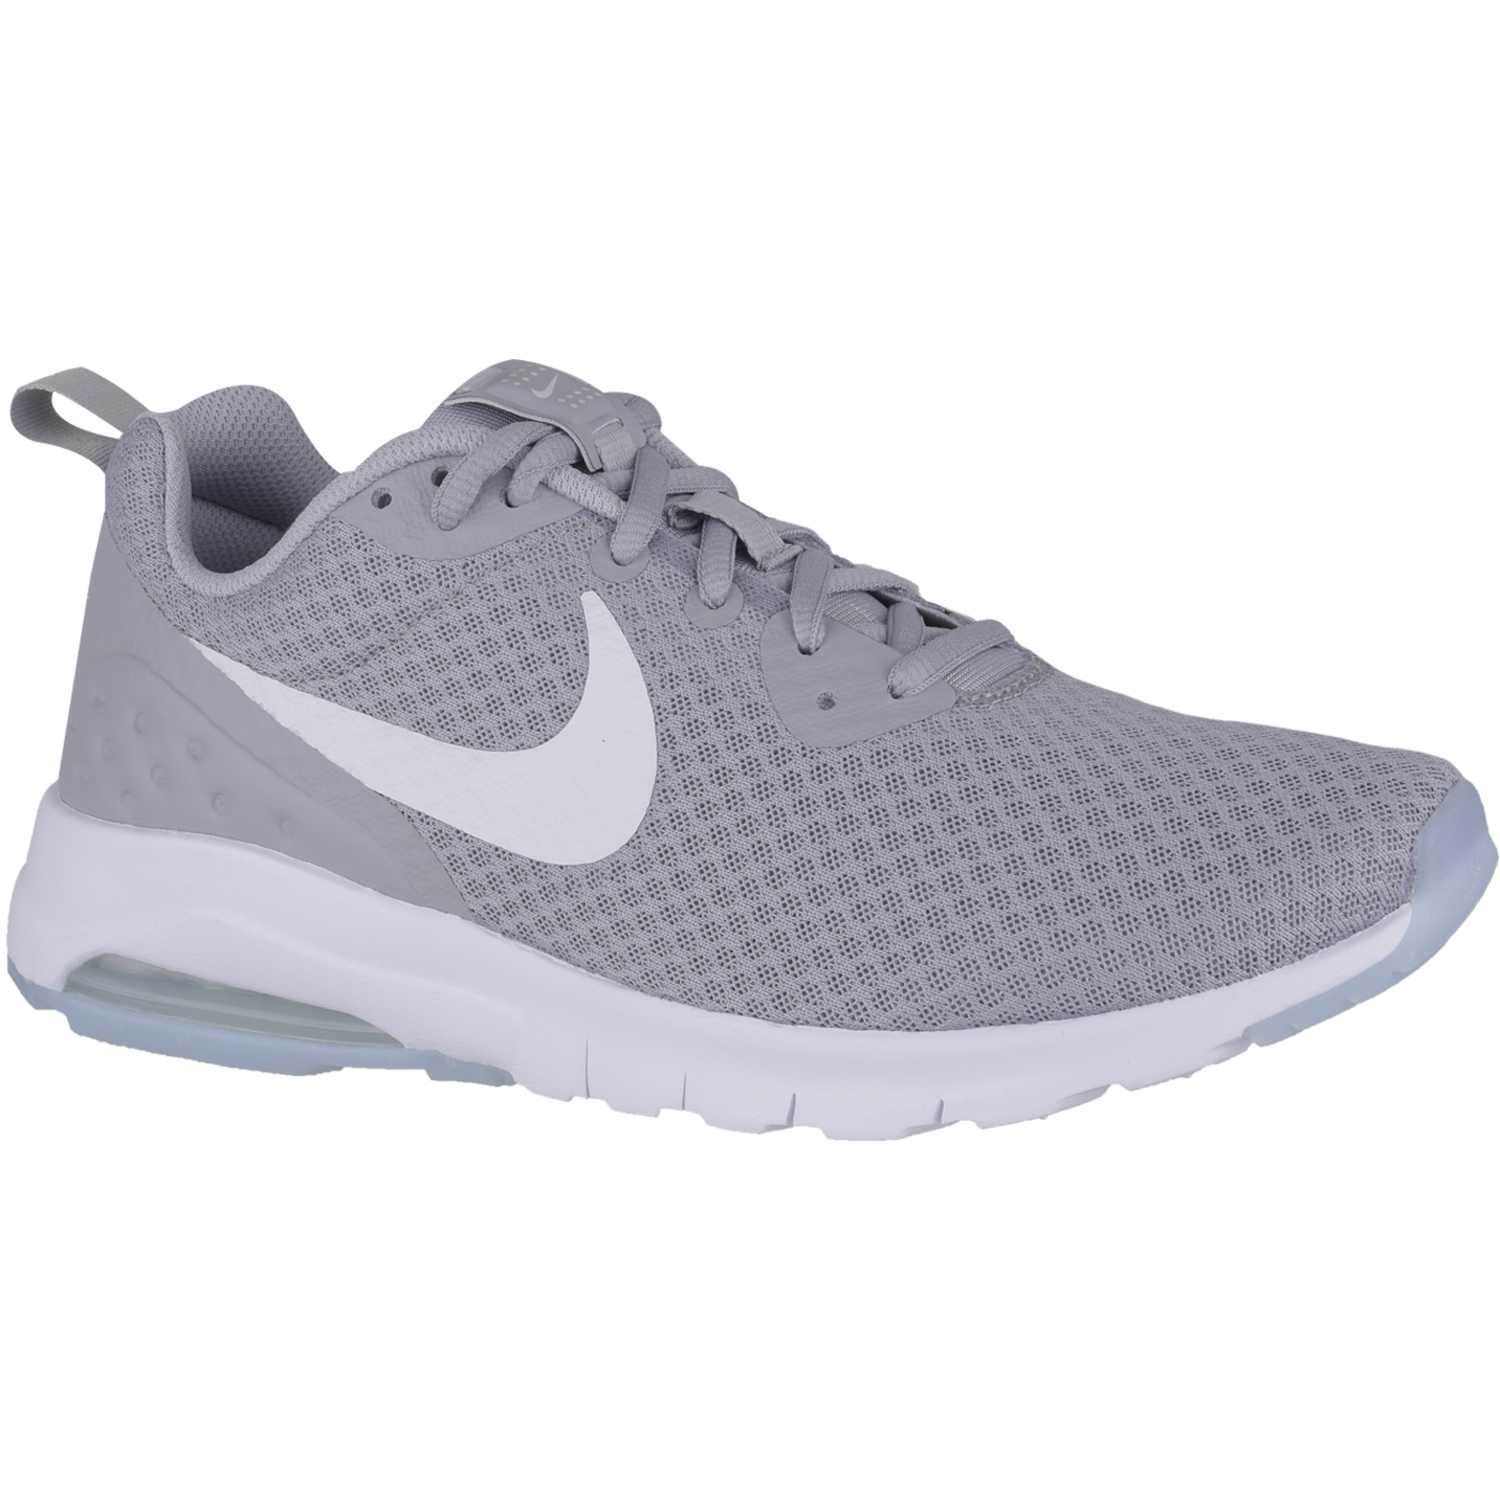 wholesale dealer e3aa8 20adb Zapatilla de Hombre Nike Gris   blanco air max motion lw